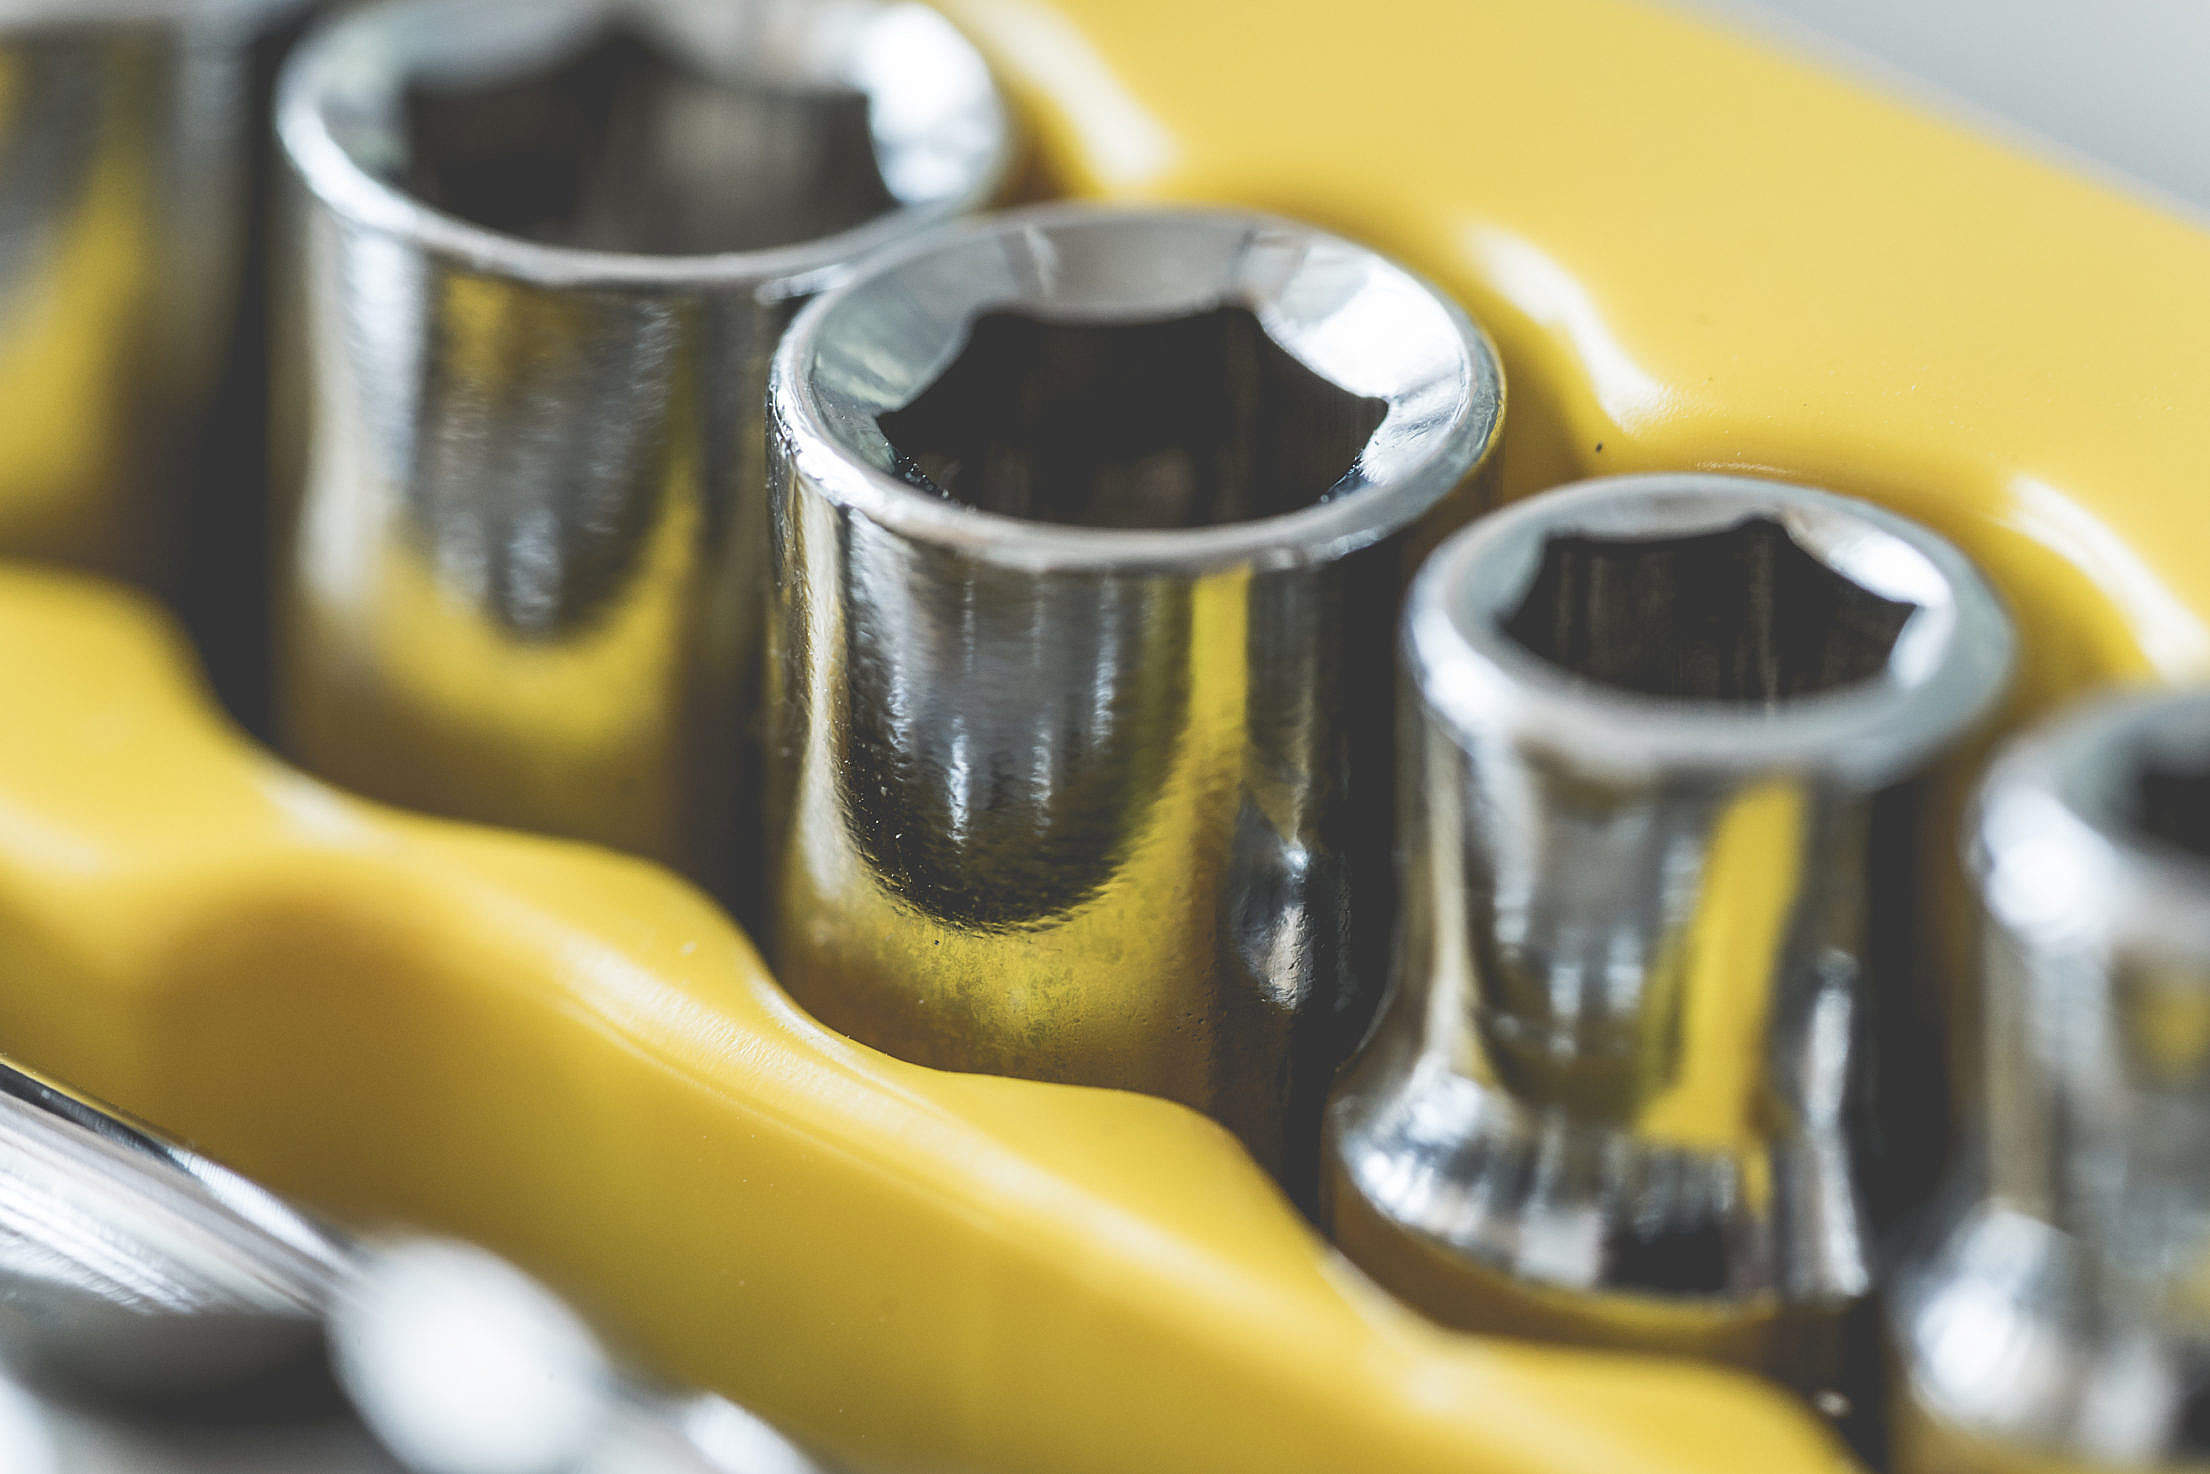 Drive Socket Set Close Up Free Stock Photo